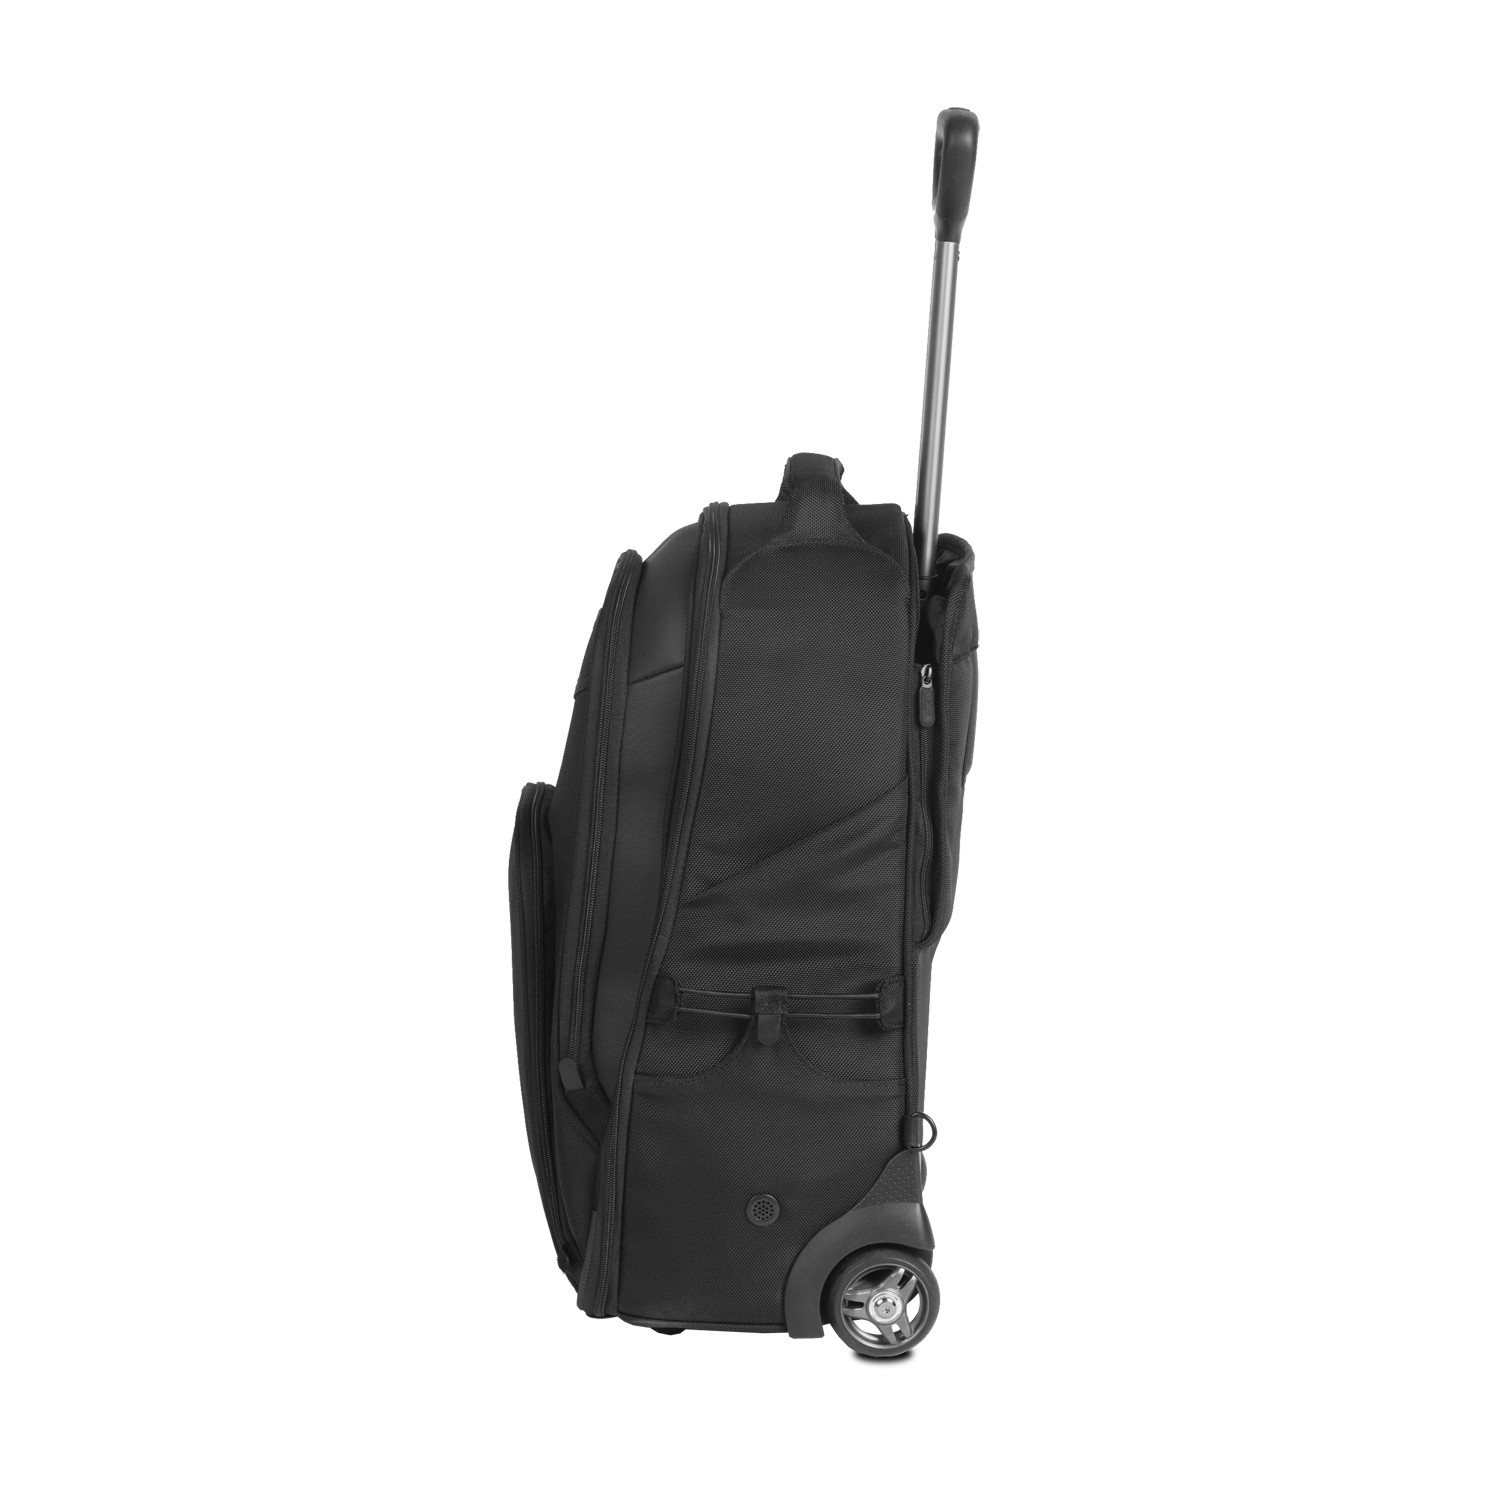 Udg Creator Wheeled Laptop Backpack Black 21 Quot Version 2